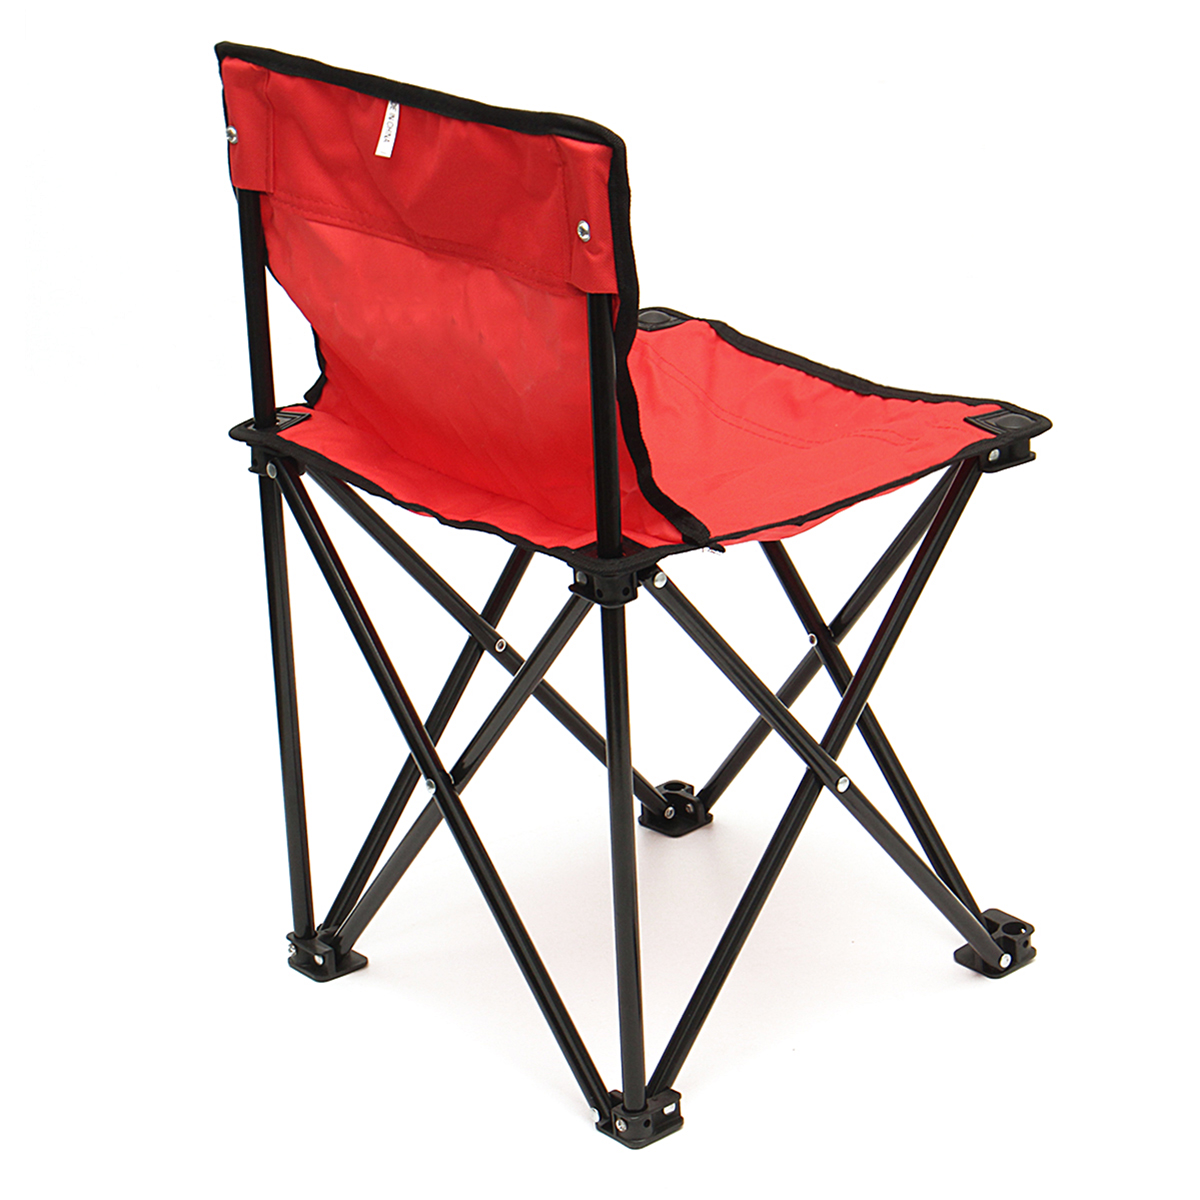 portable folding chairs saddle leather office chair 3431 5x32cm seat for camping